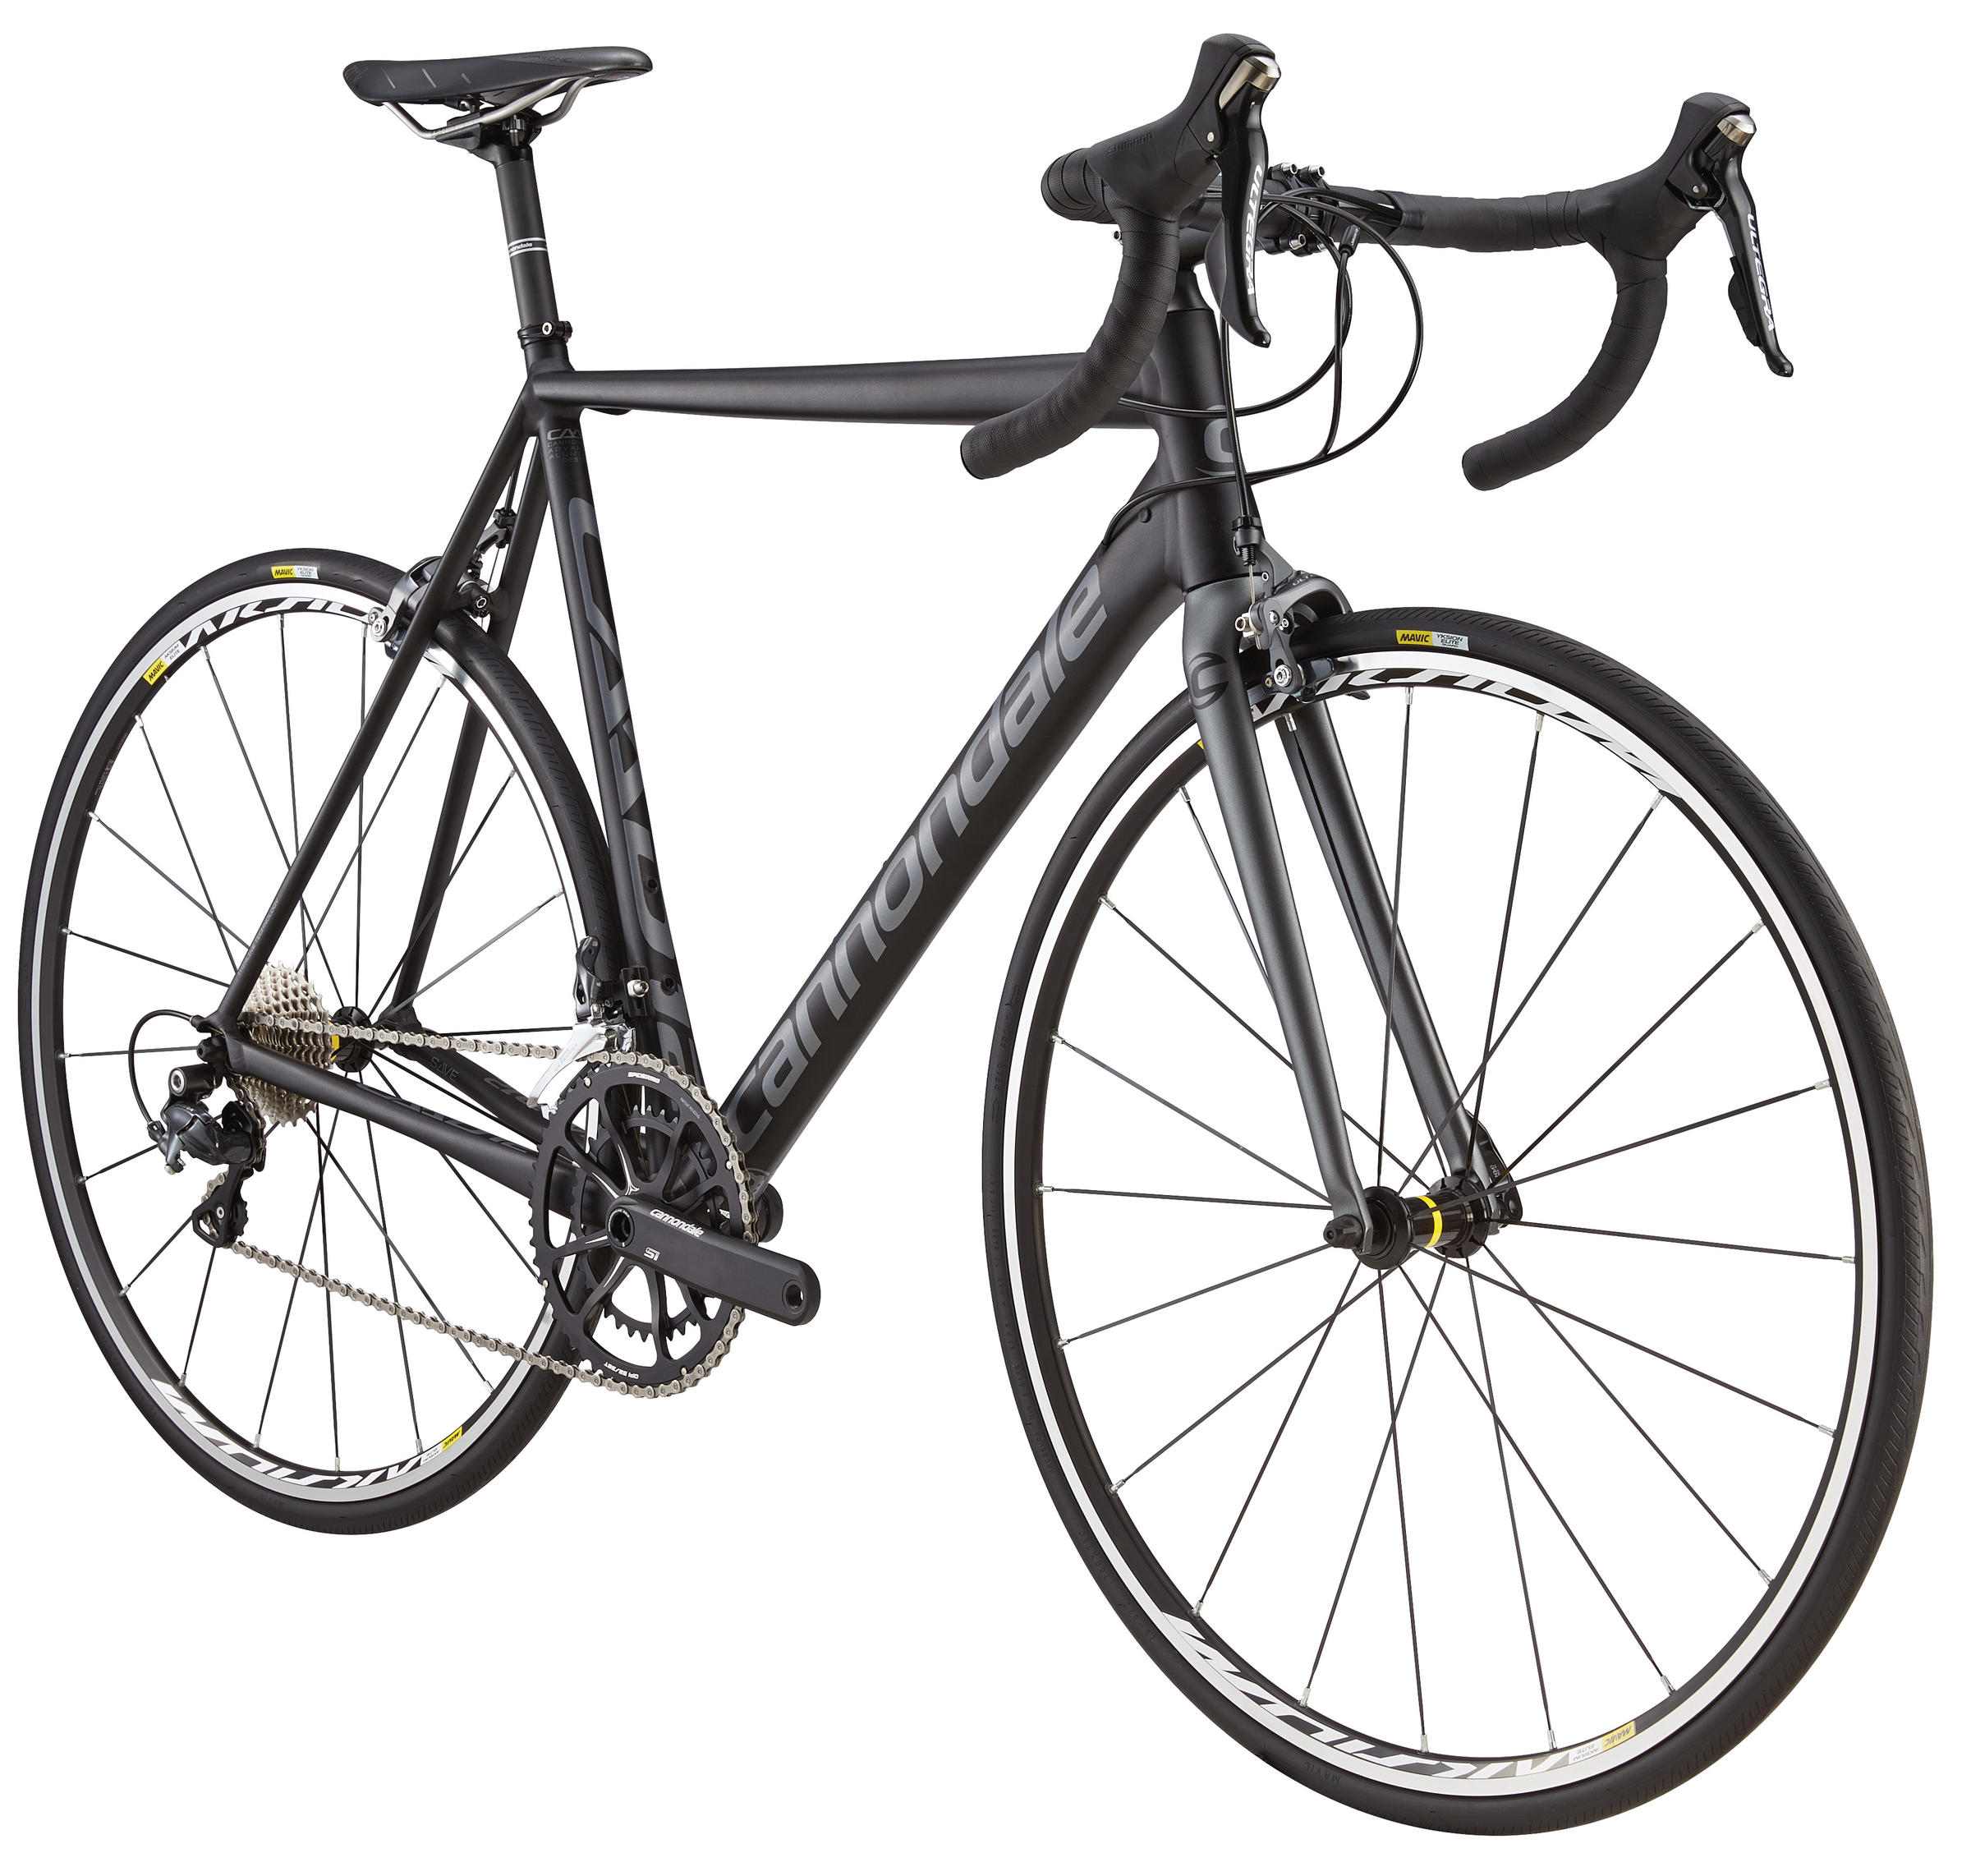 979ea794a02 Cannondale CAAD12 Ultegra - www.trekbicyclesuperstore.com